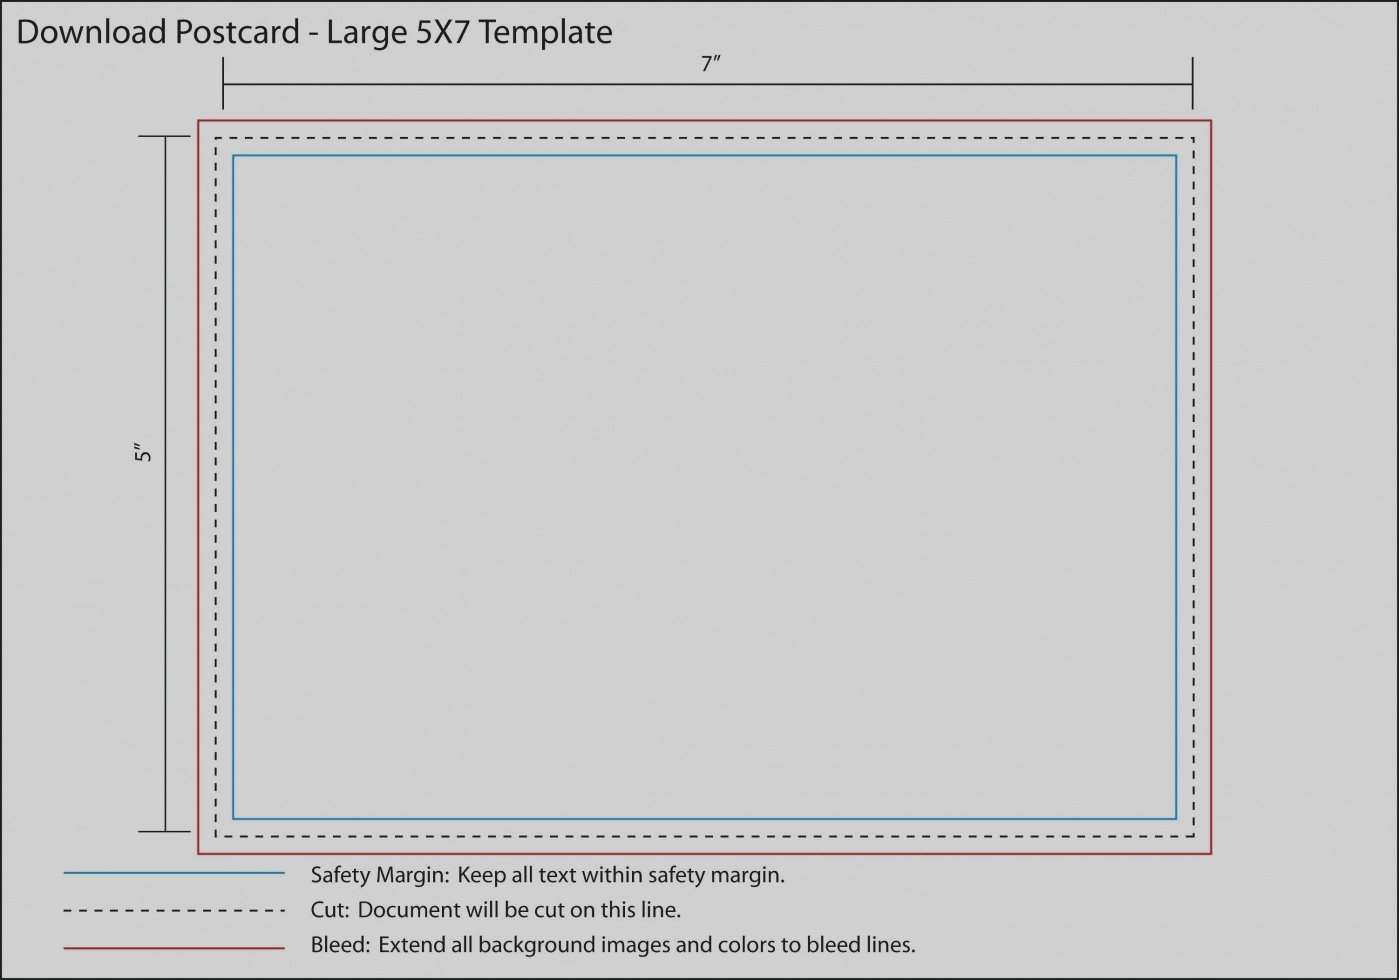 Recipe Cards Template For Word Elegant Best X Blank Index Card In Word Template For 3X5 Index Cards